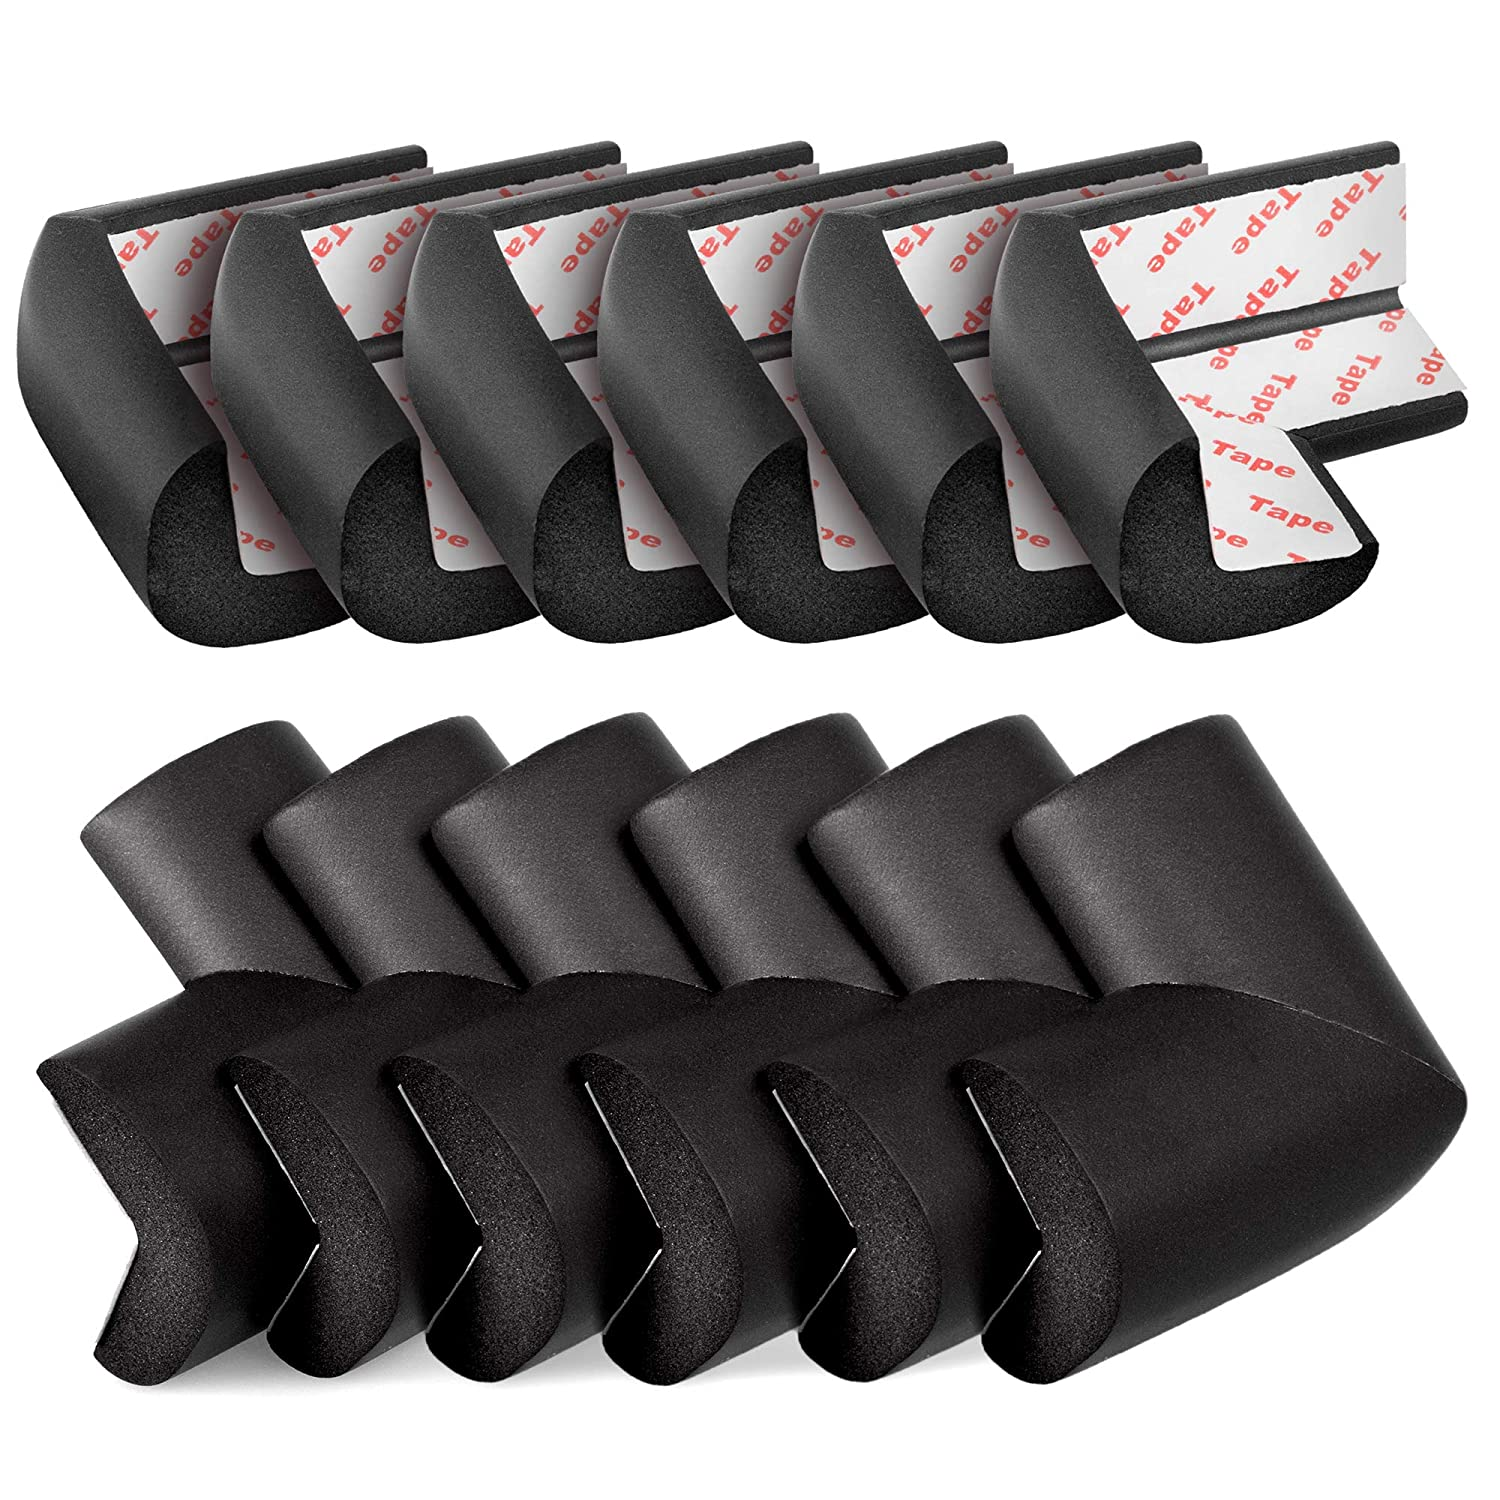 TILLYOU Corner Protector (12 Pack) Baby Proofing Edge and Corner Guards Foam, Table Safety Bumpers, Pre-Taped Furniture Corner Cushion (Black)